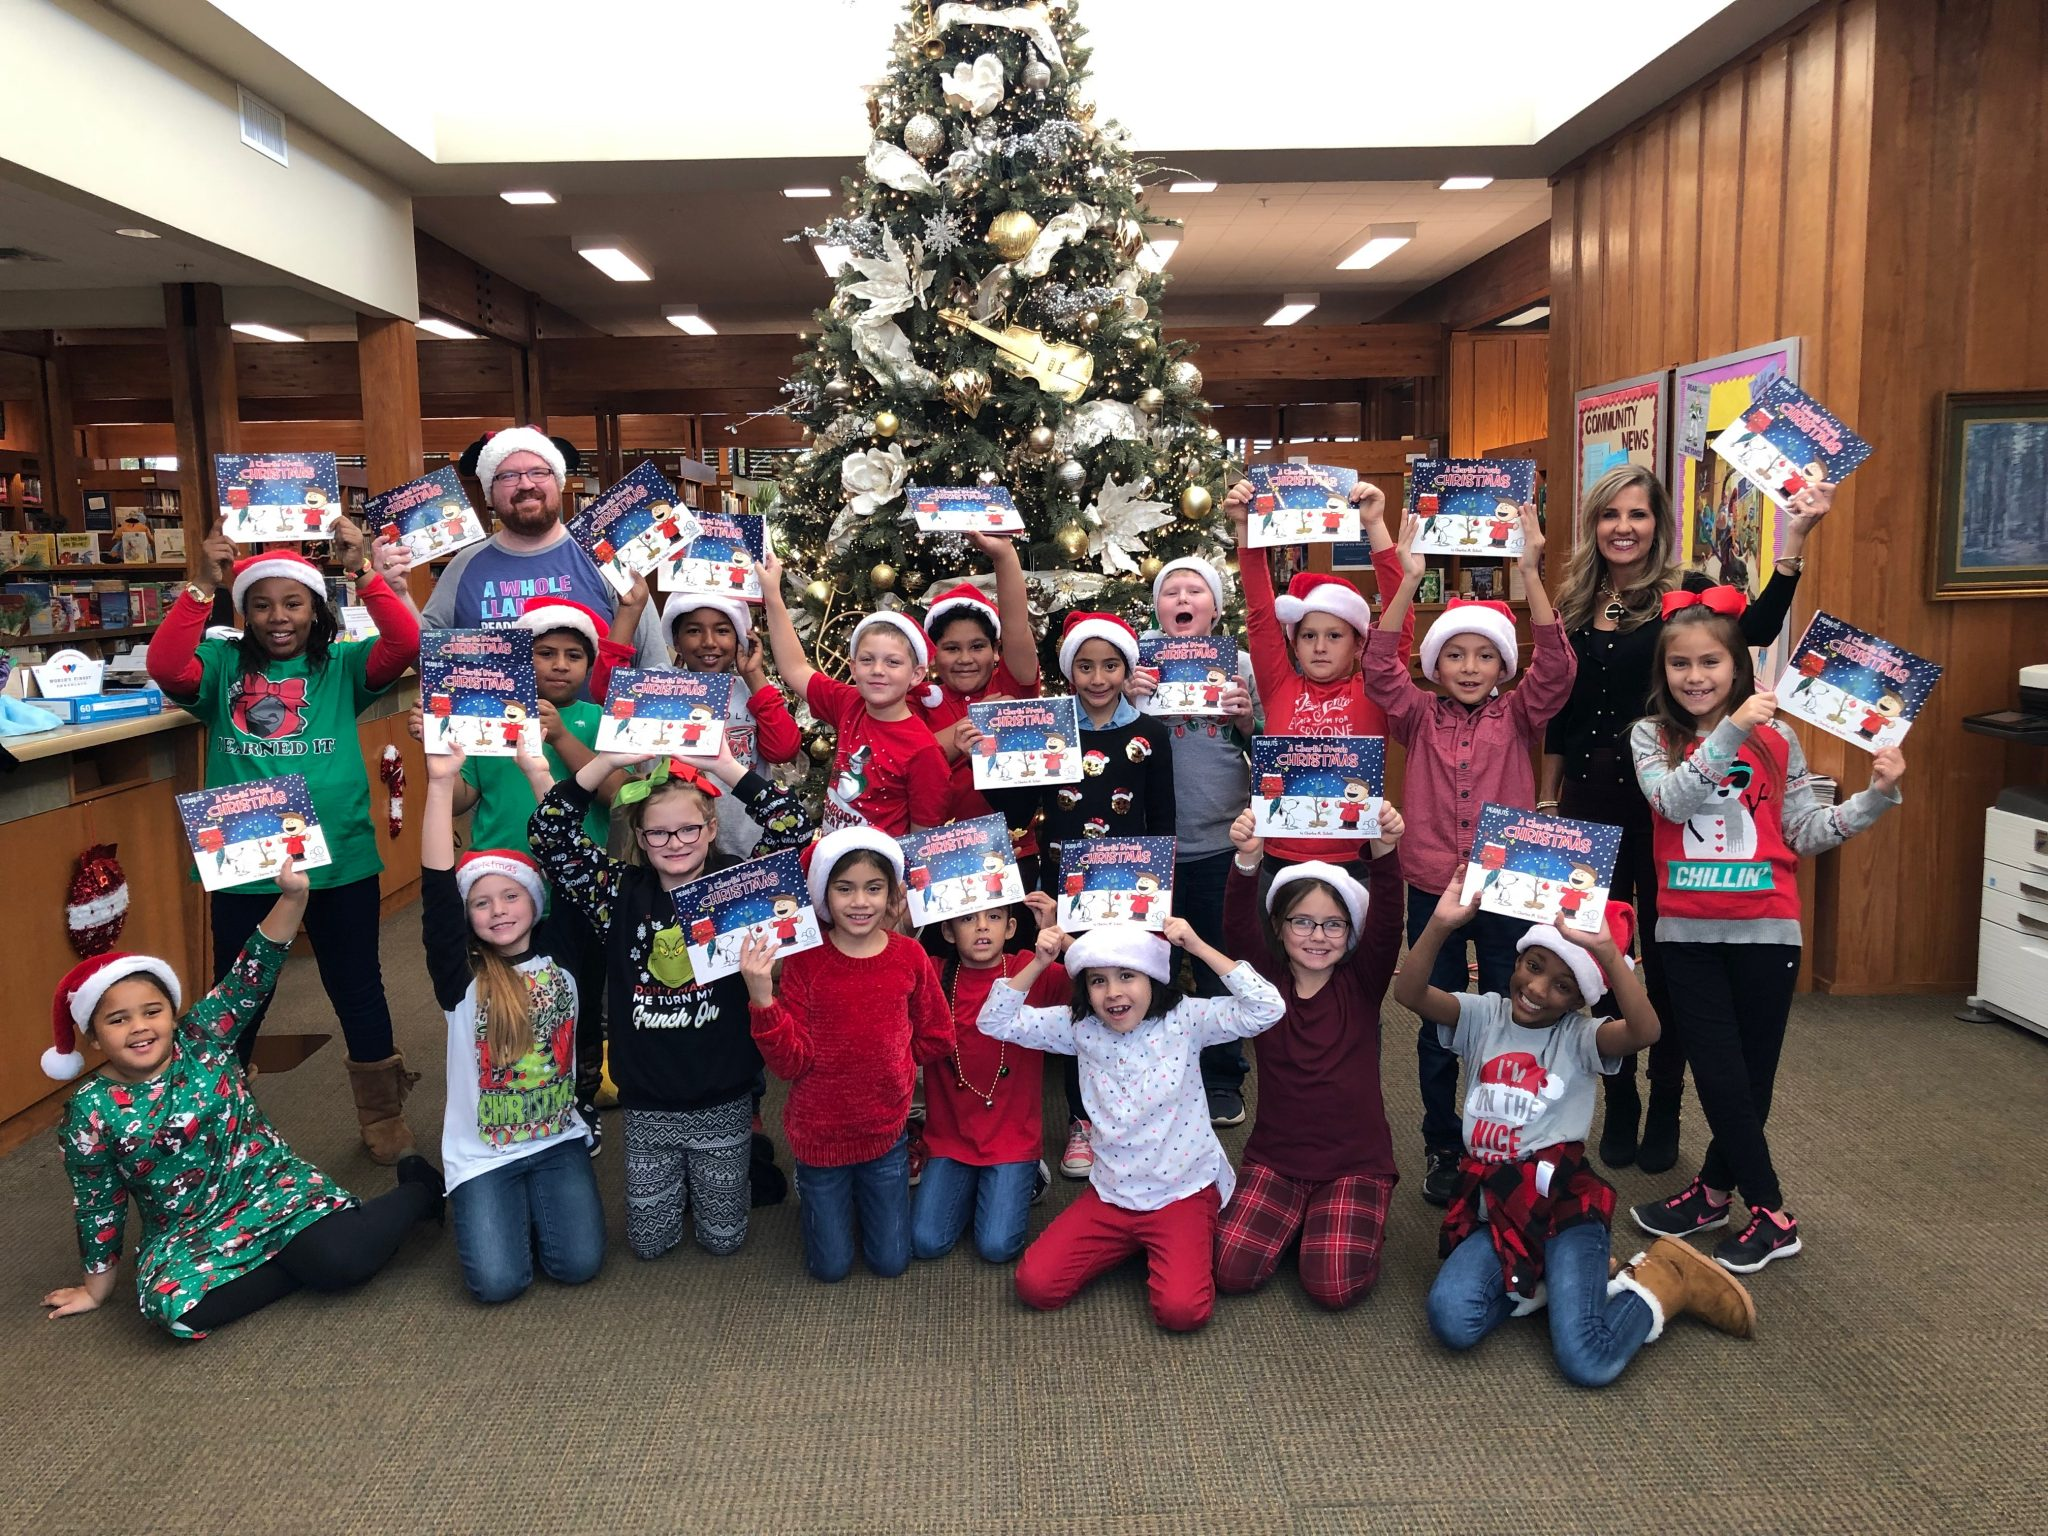 Georgia-Pacific Gives the Gift of Reading this Christmas